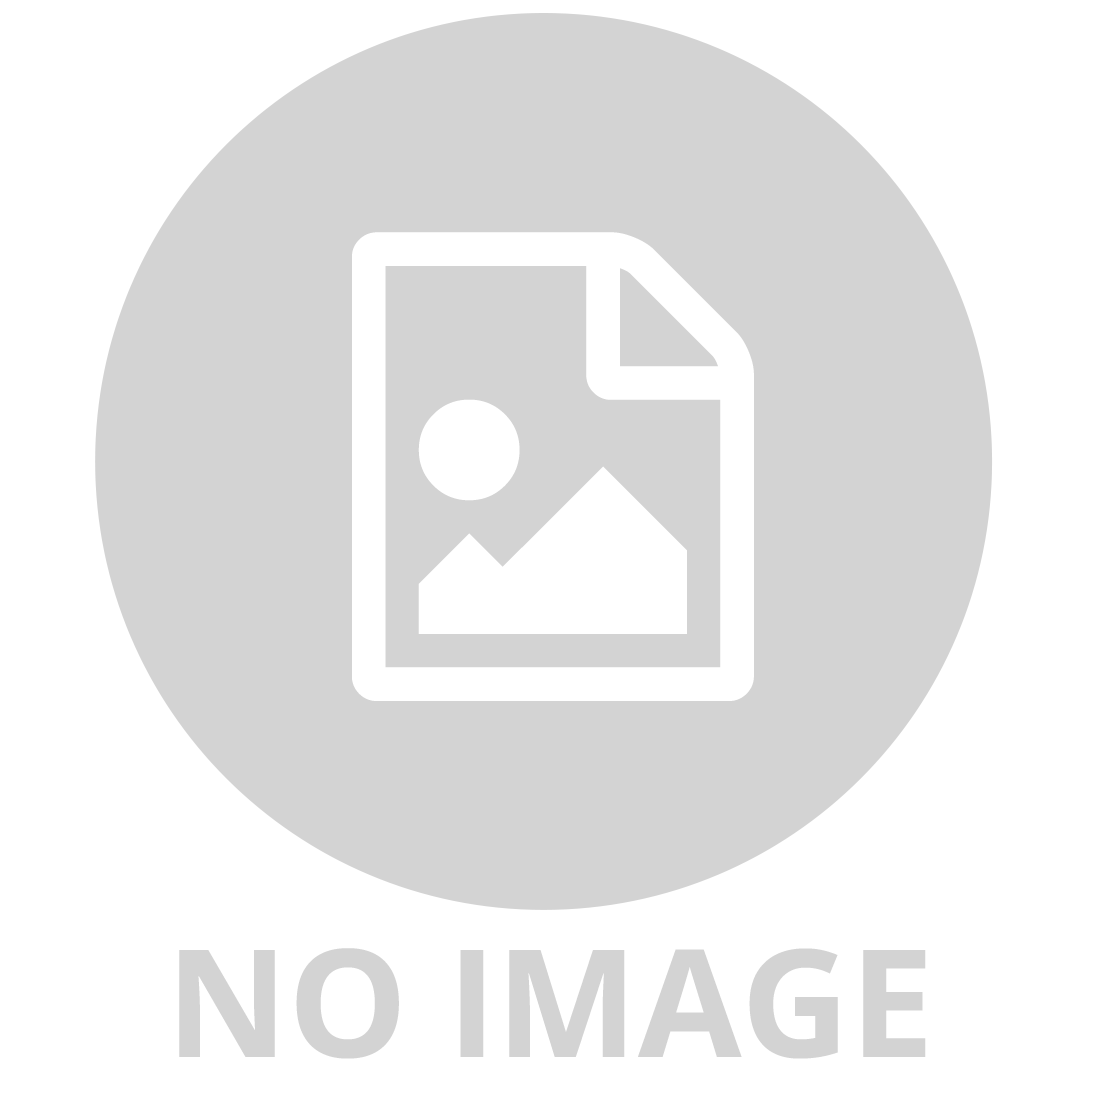 ADRENALINE FREESTYLE CRUISER SKATEBOARD